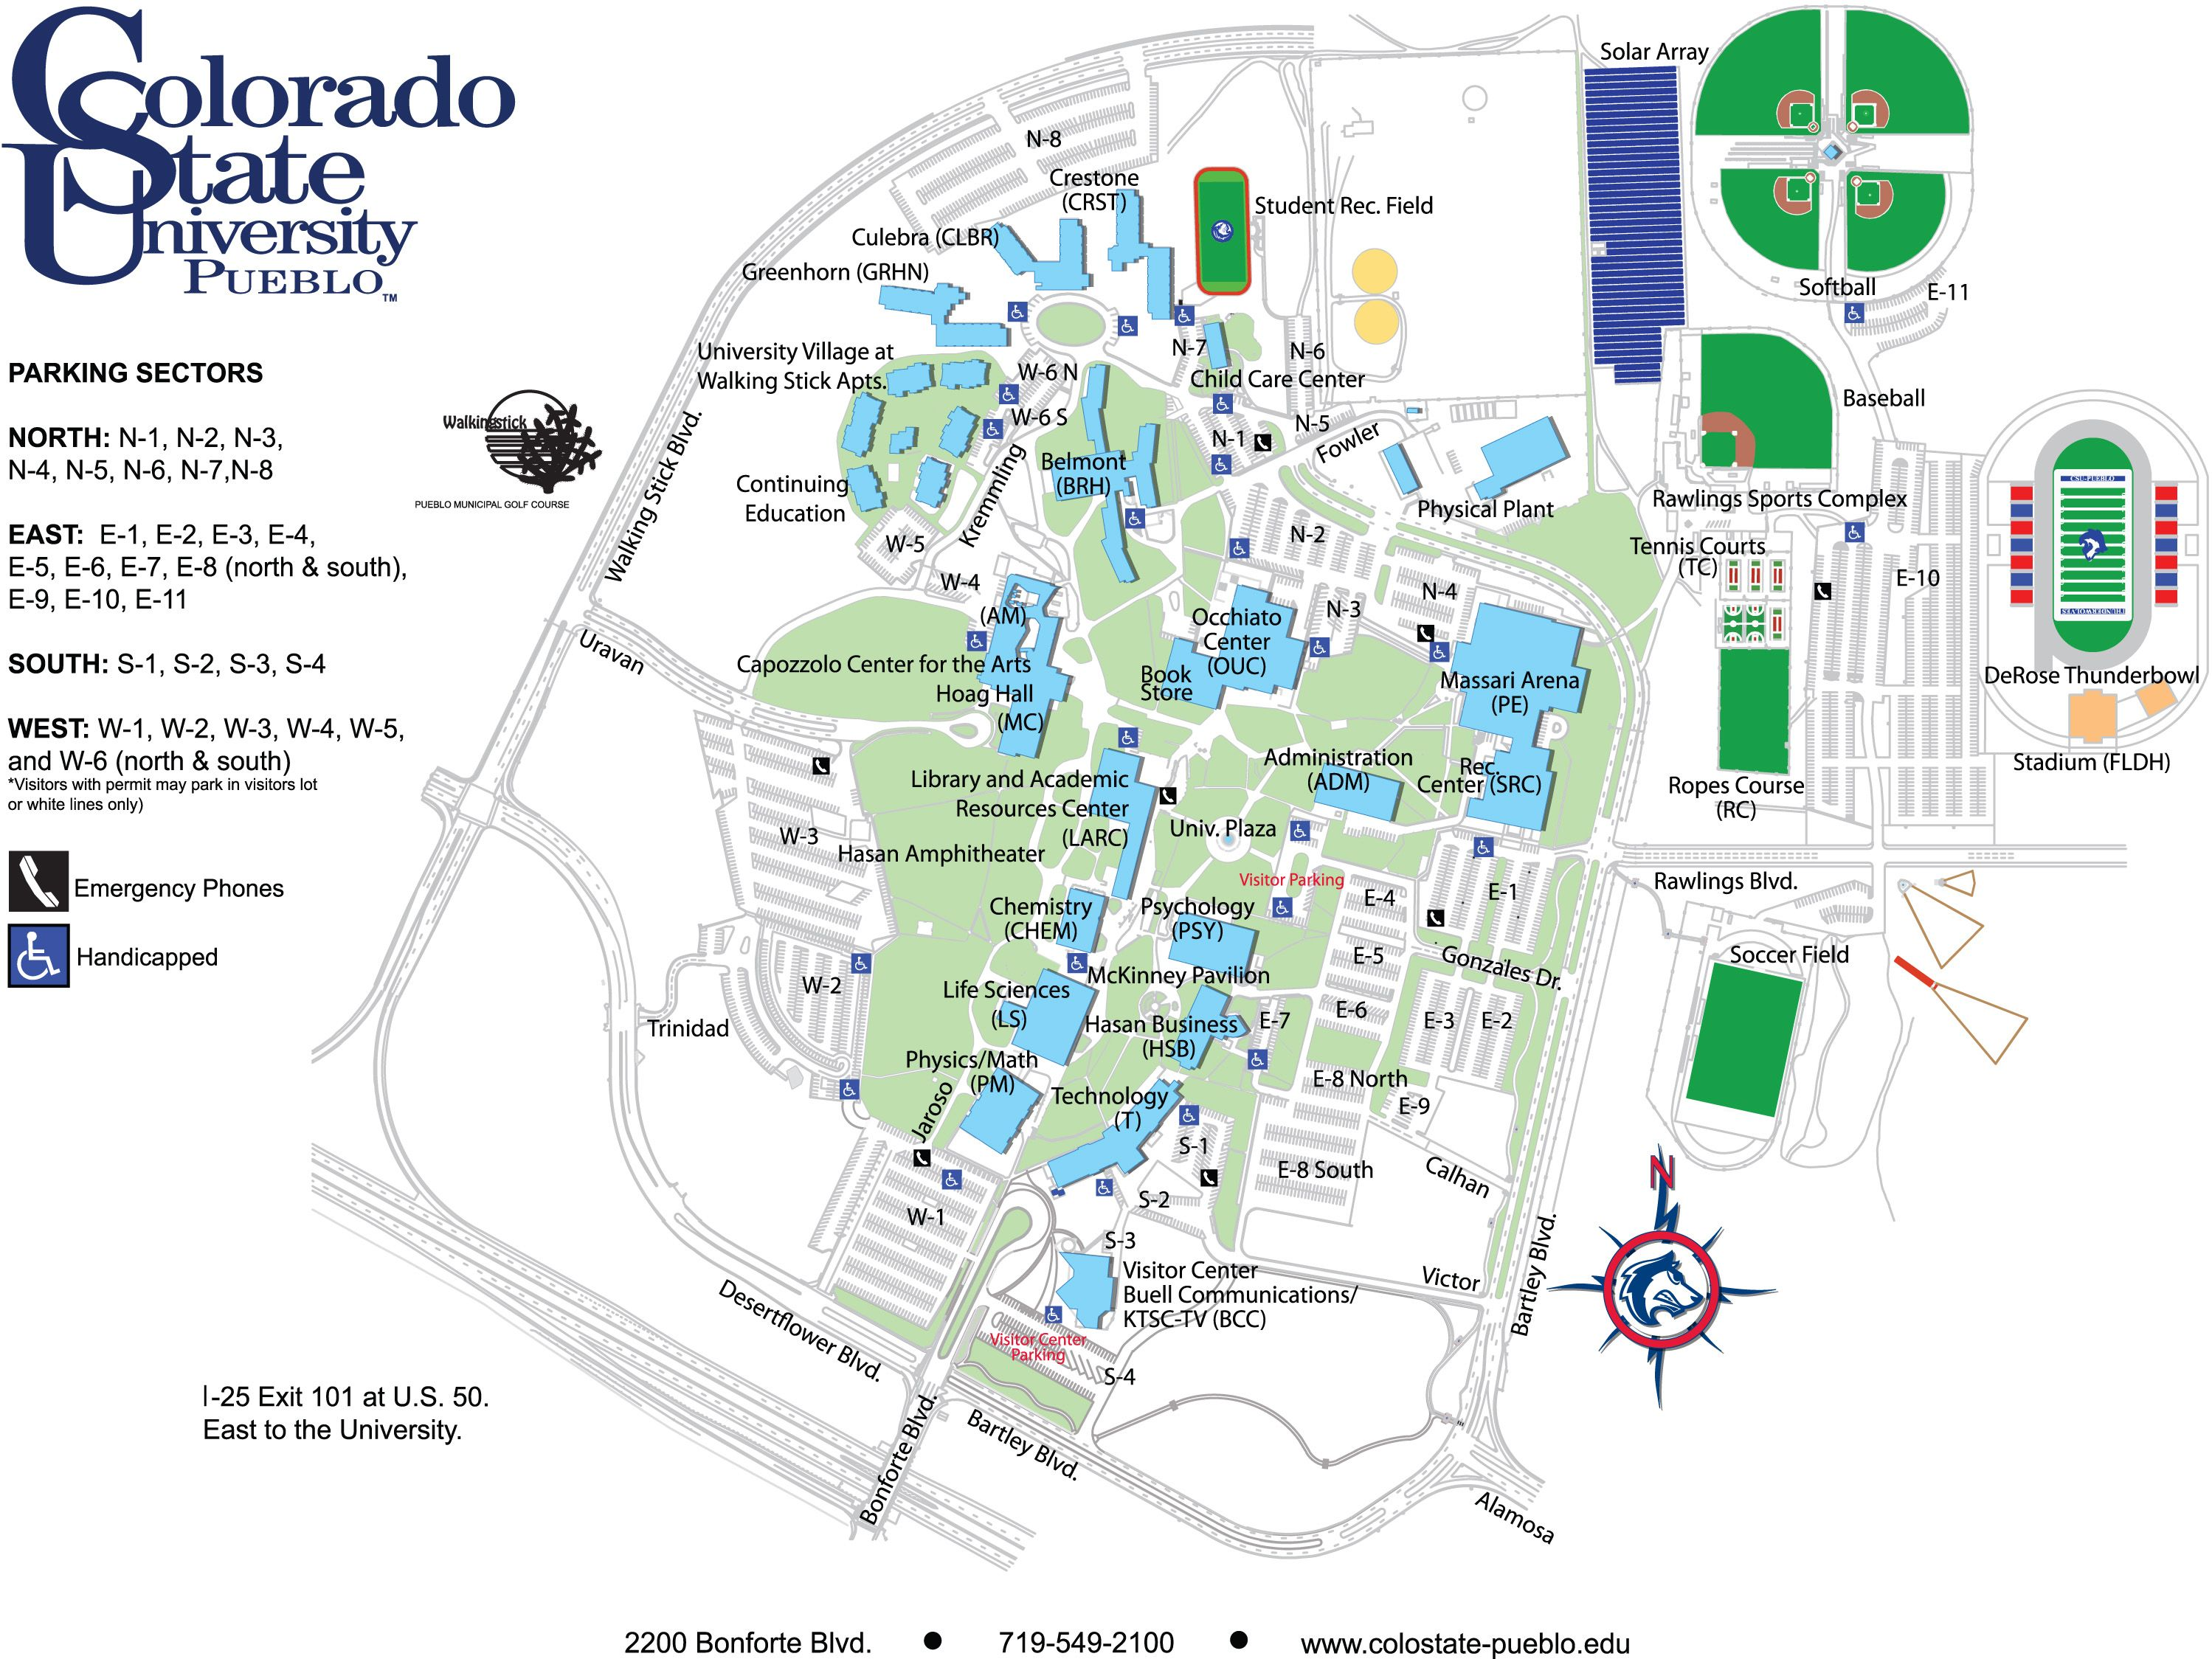 Colorado State University Campus Map | Colorado State University